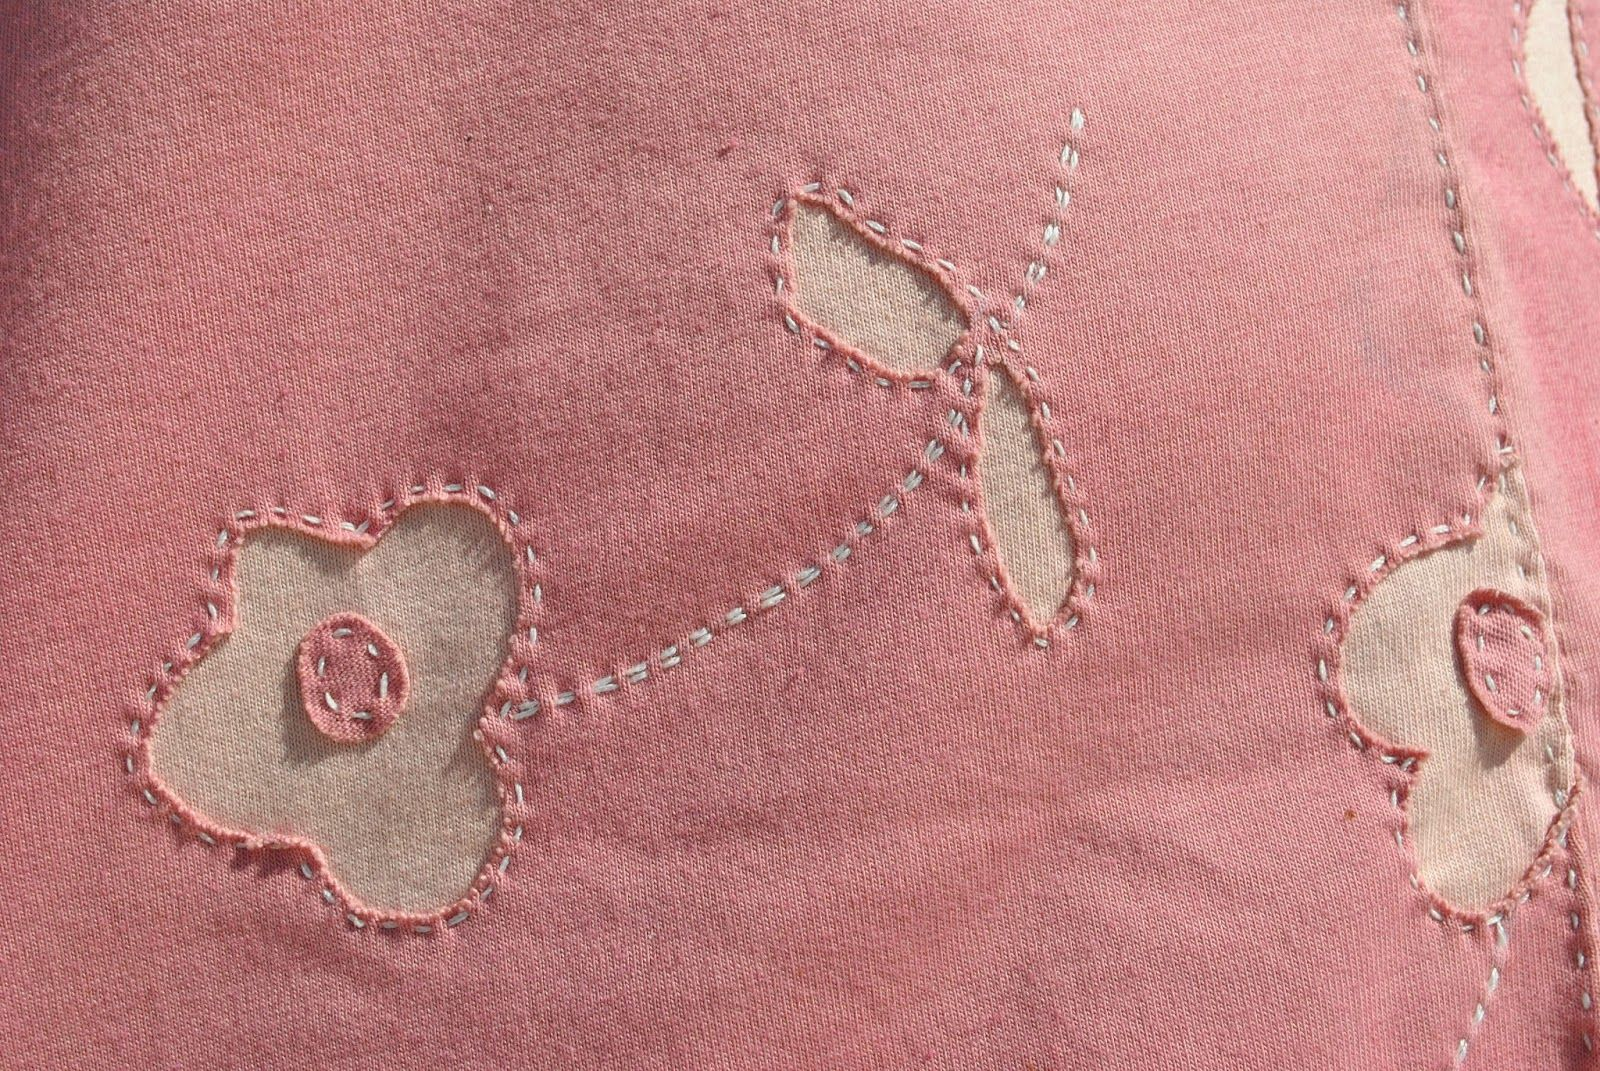 Alabama chanin; reverse appliqué with showy stitches. applique